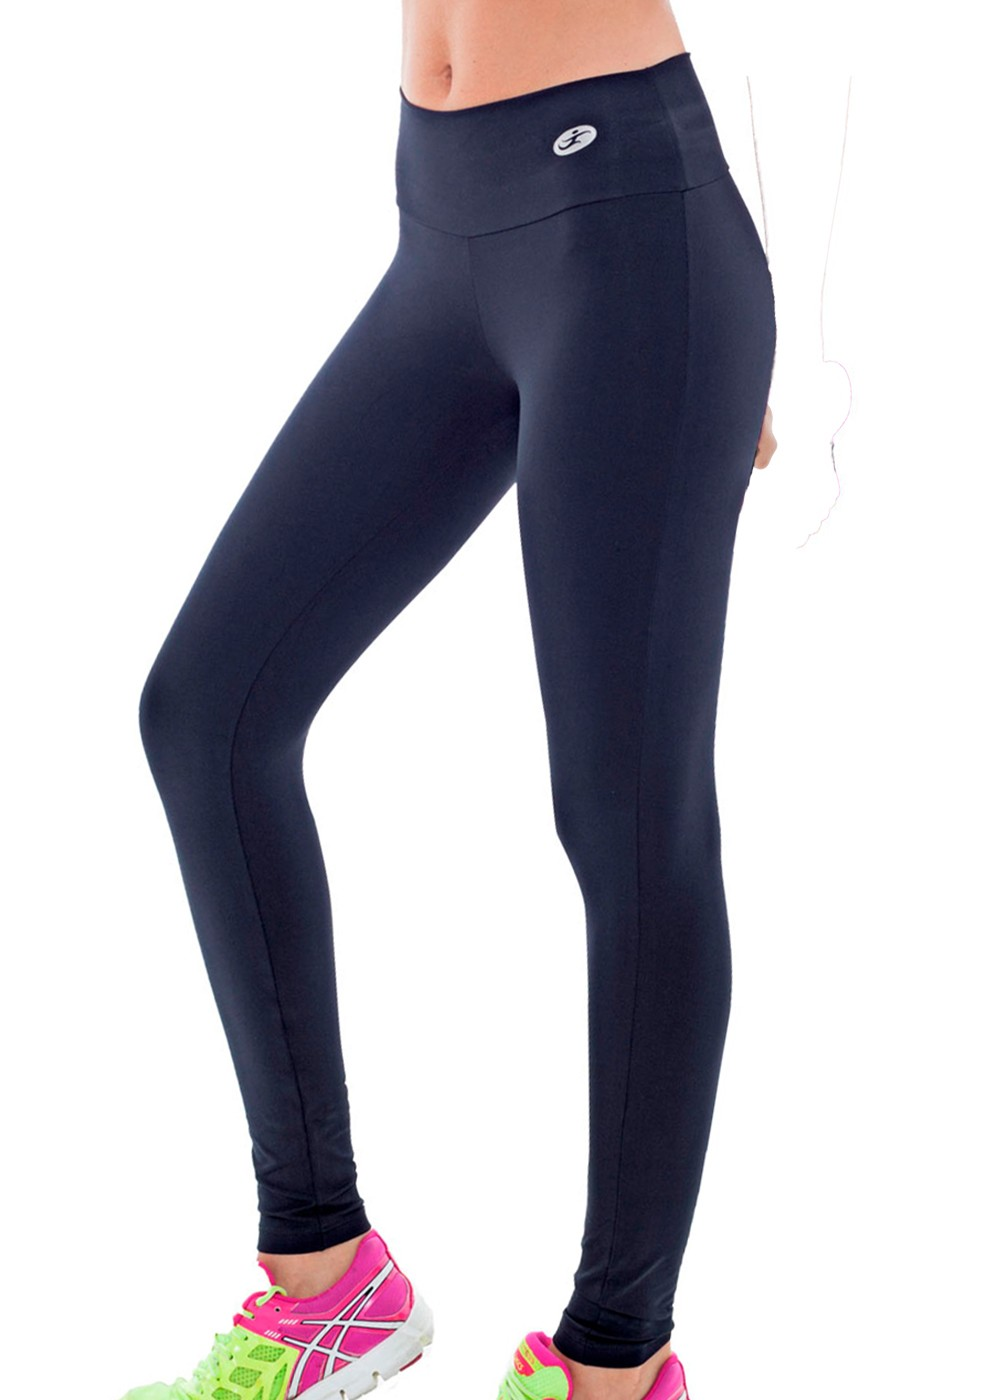 CALÇA LEGGING LISA SUPPLEX FEMININA JUST FIT - PRETO